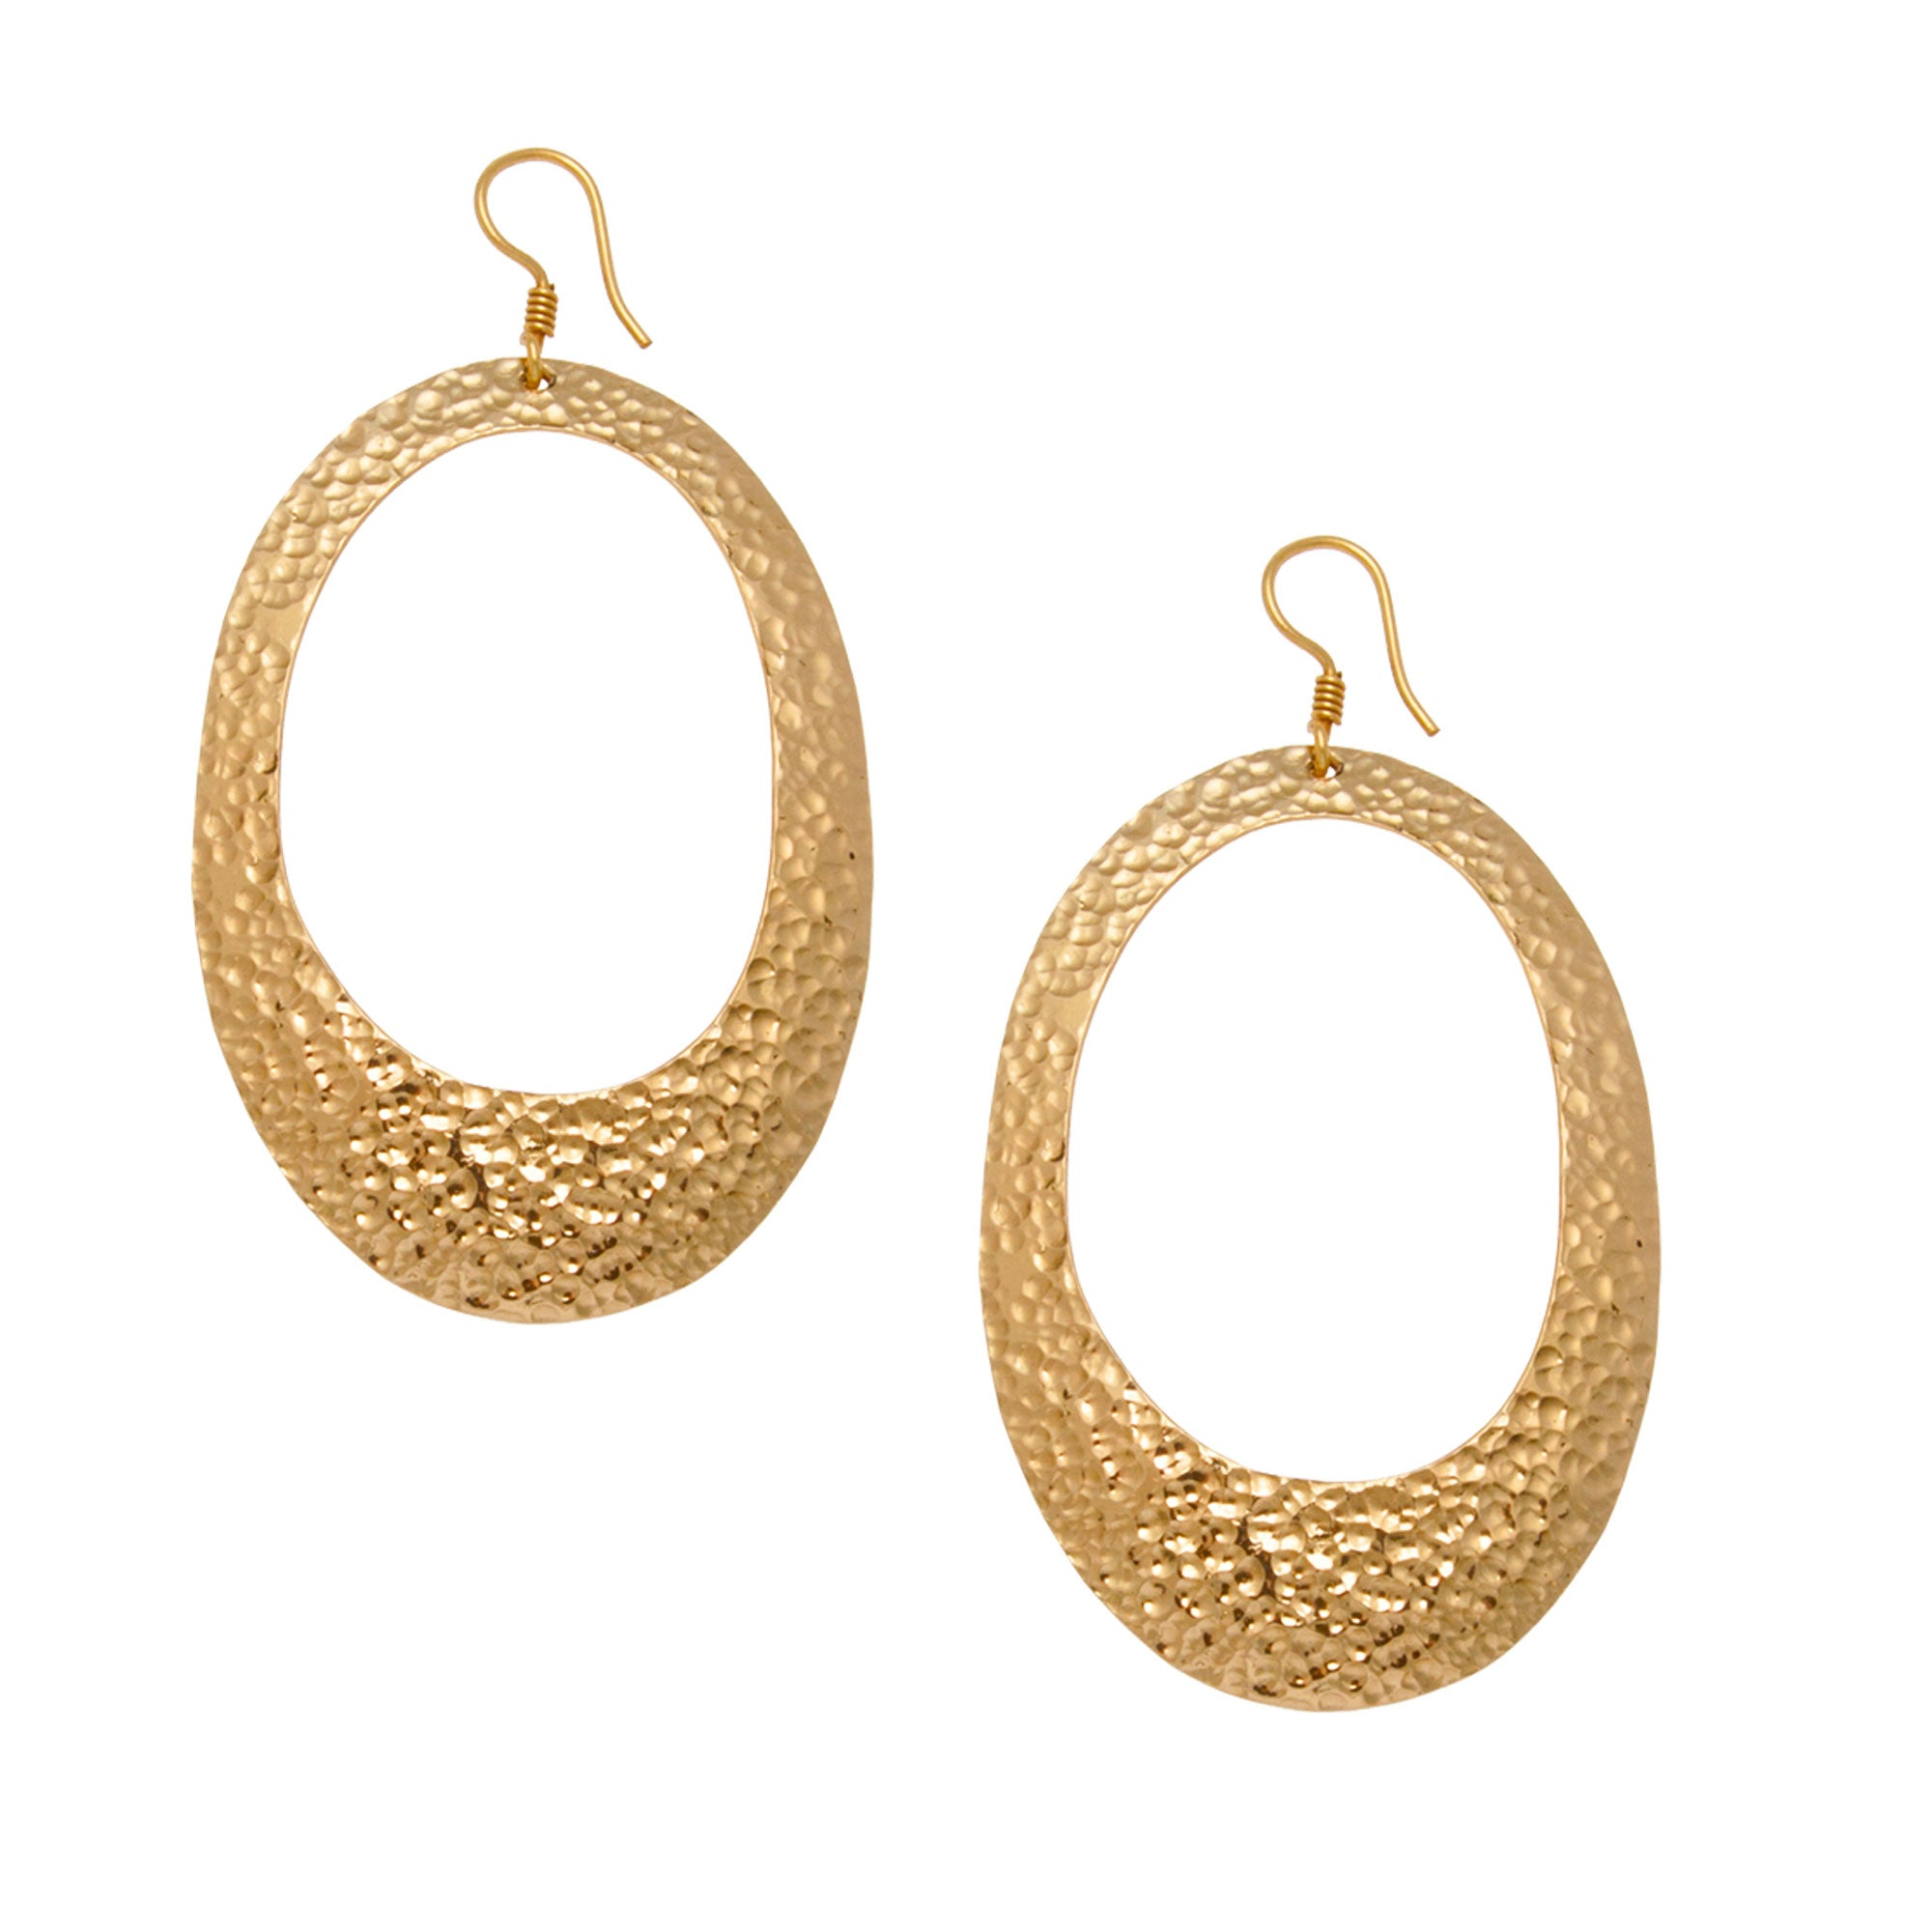 Alchemia Oval Hammered Earrings | Charles Albert Jewelry